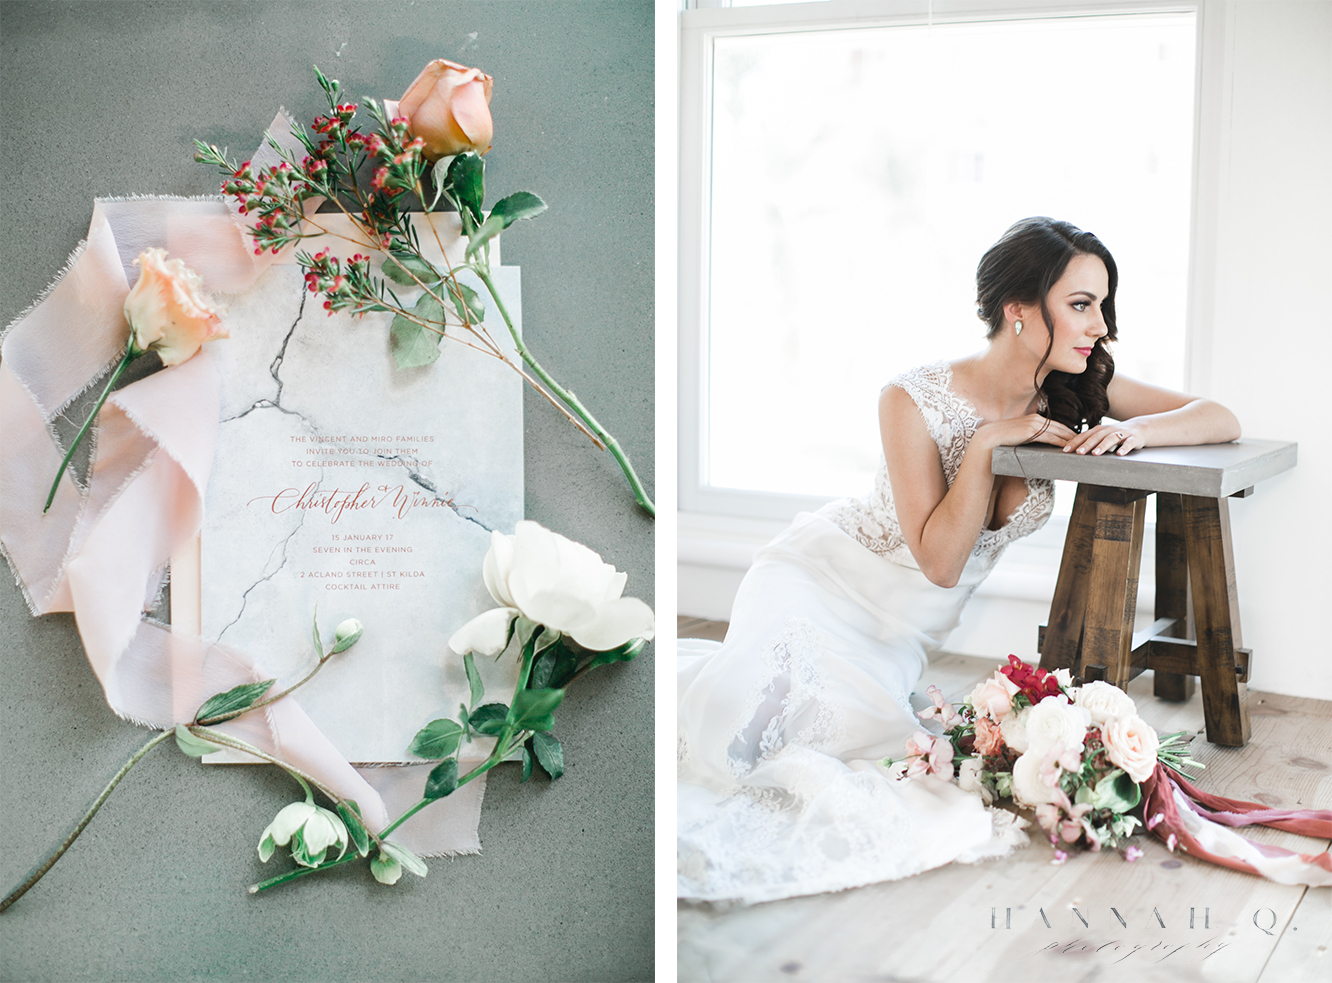 This year I worked on multiple collaborations with fellow wedding creatives and it was possibly the most fun I've had all year.